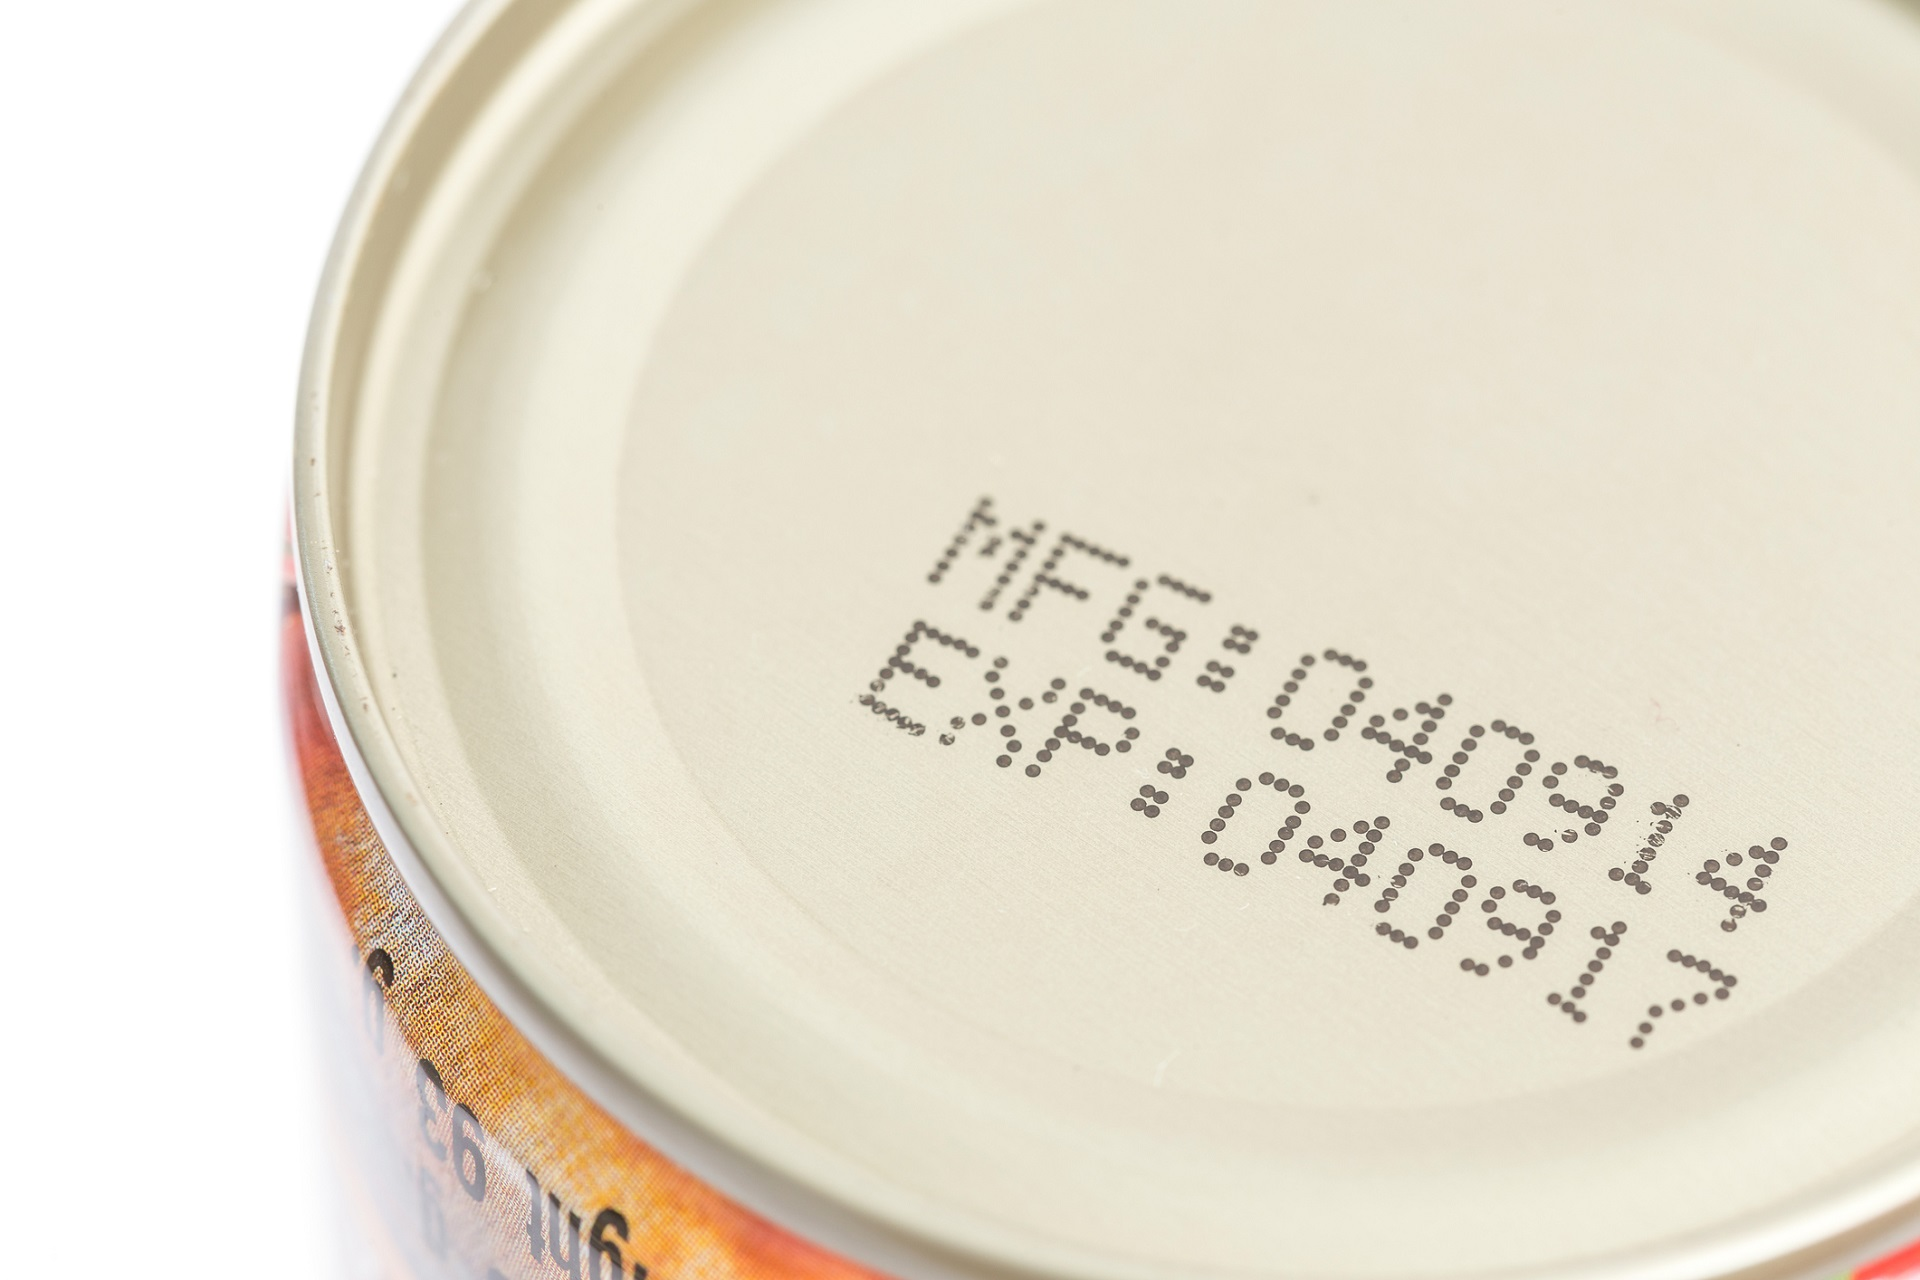 labeling and dating food products